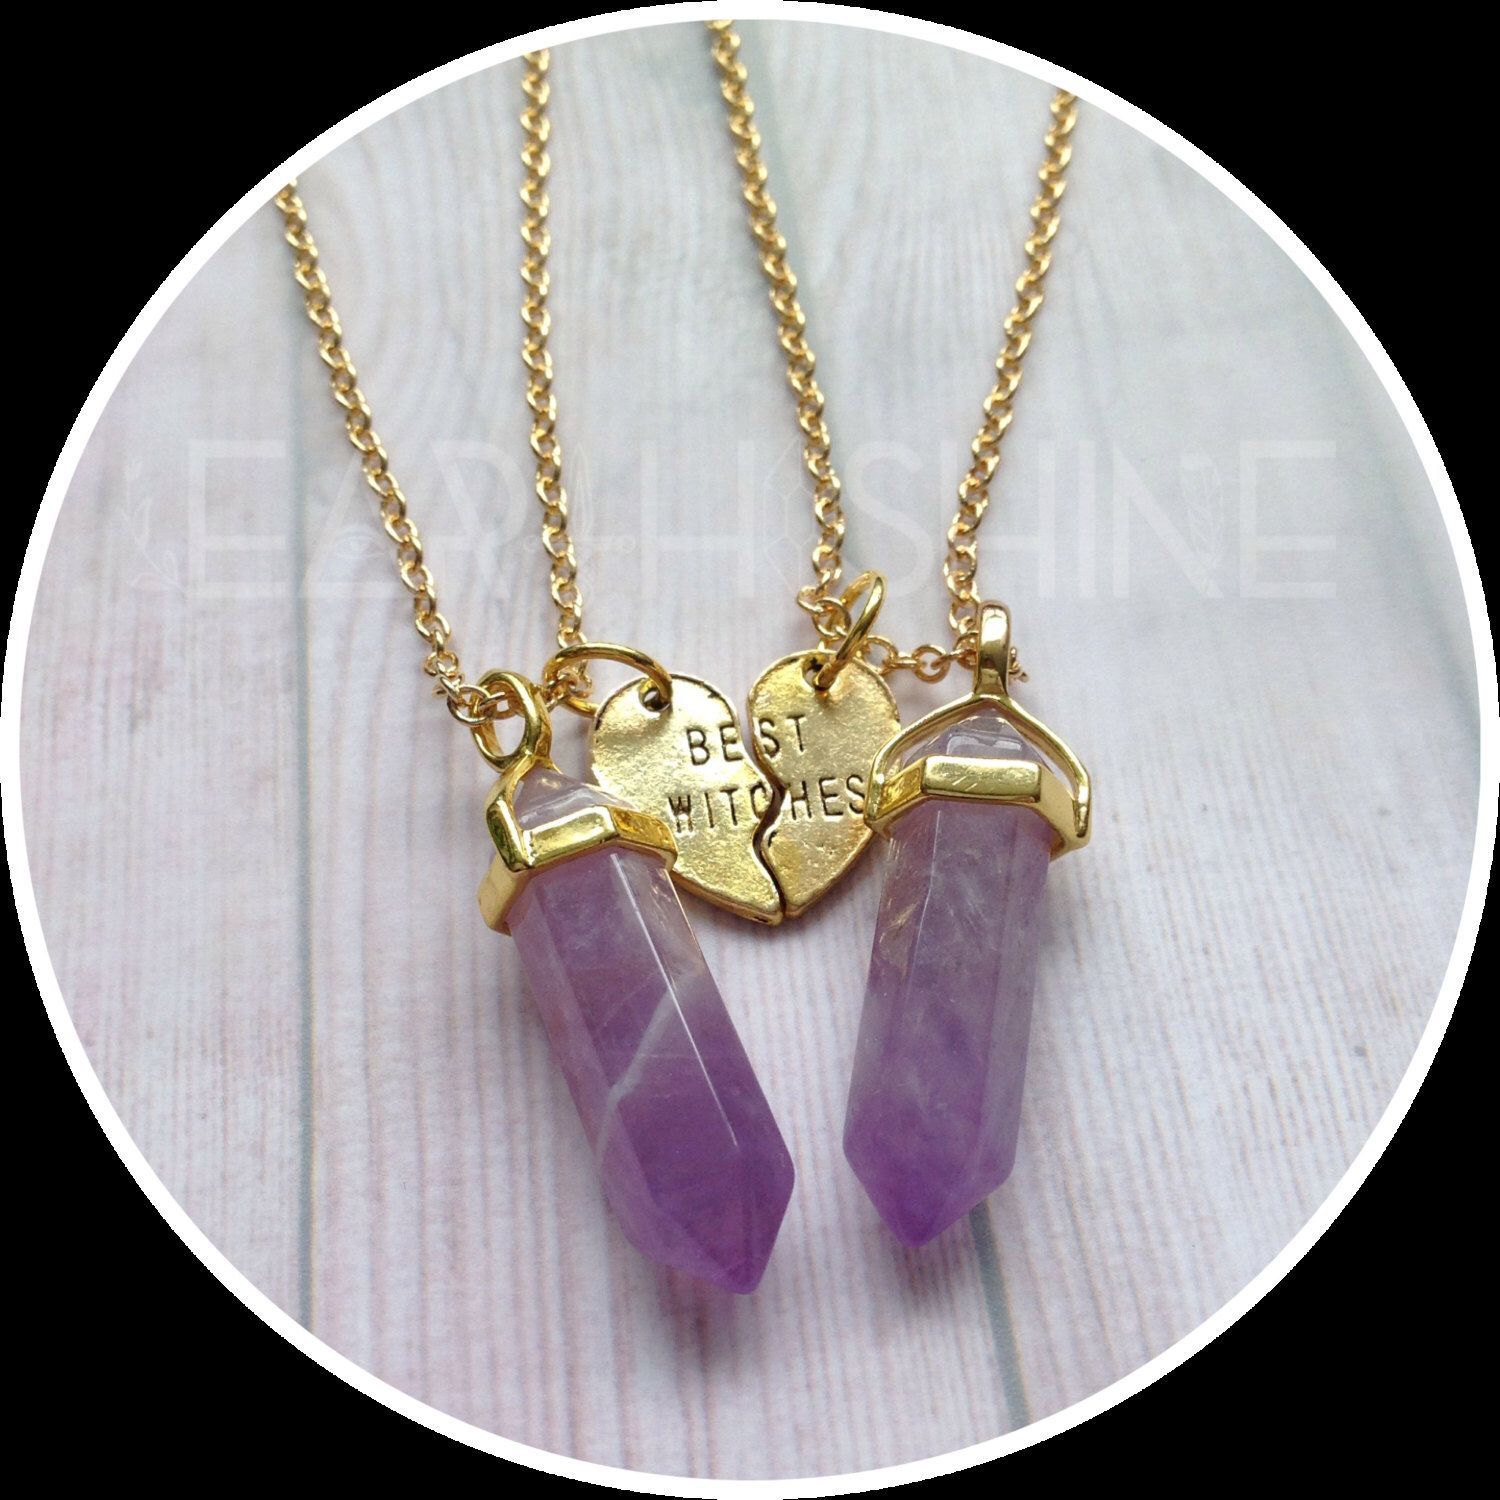 Best Witches Crystal necklaces, YOUR CHOICE OF gemstone ...